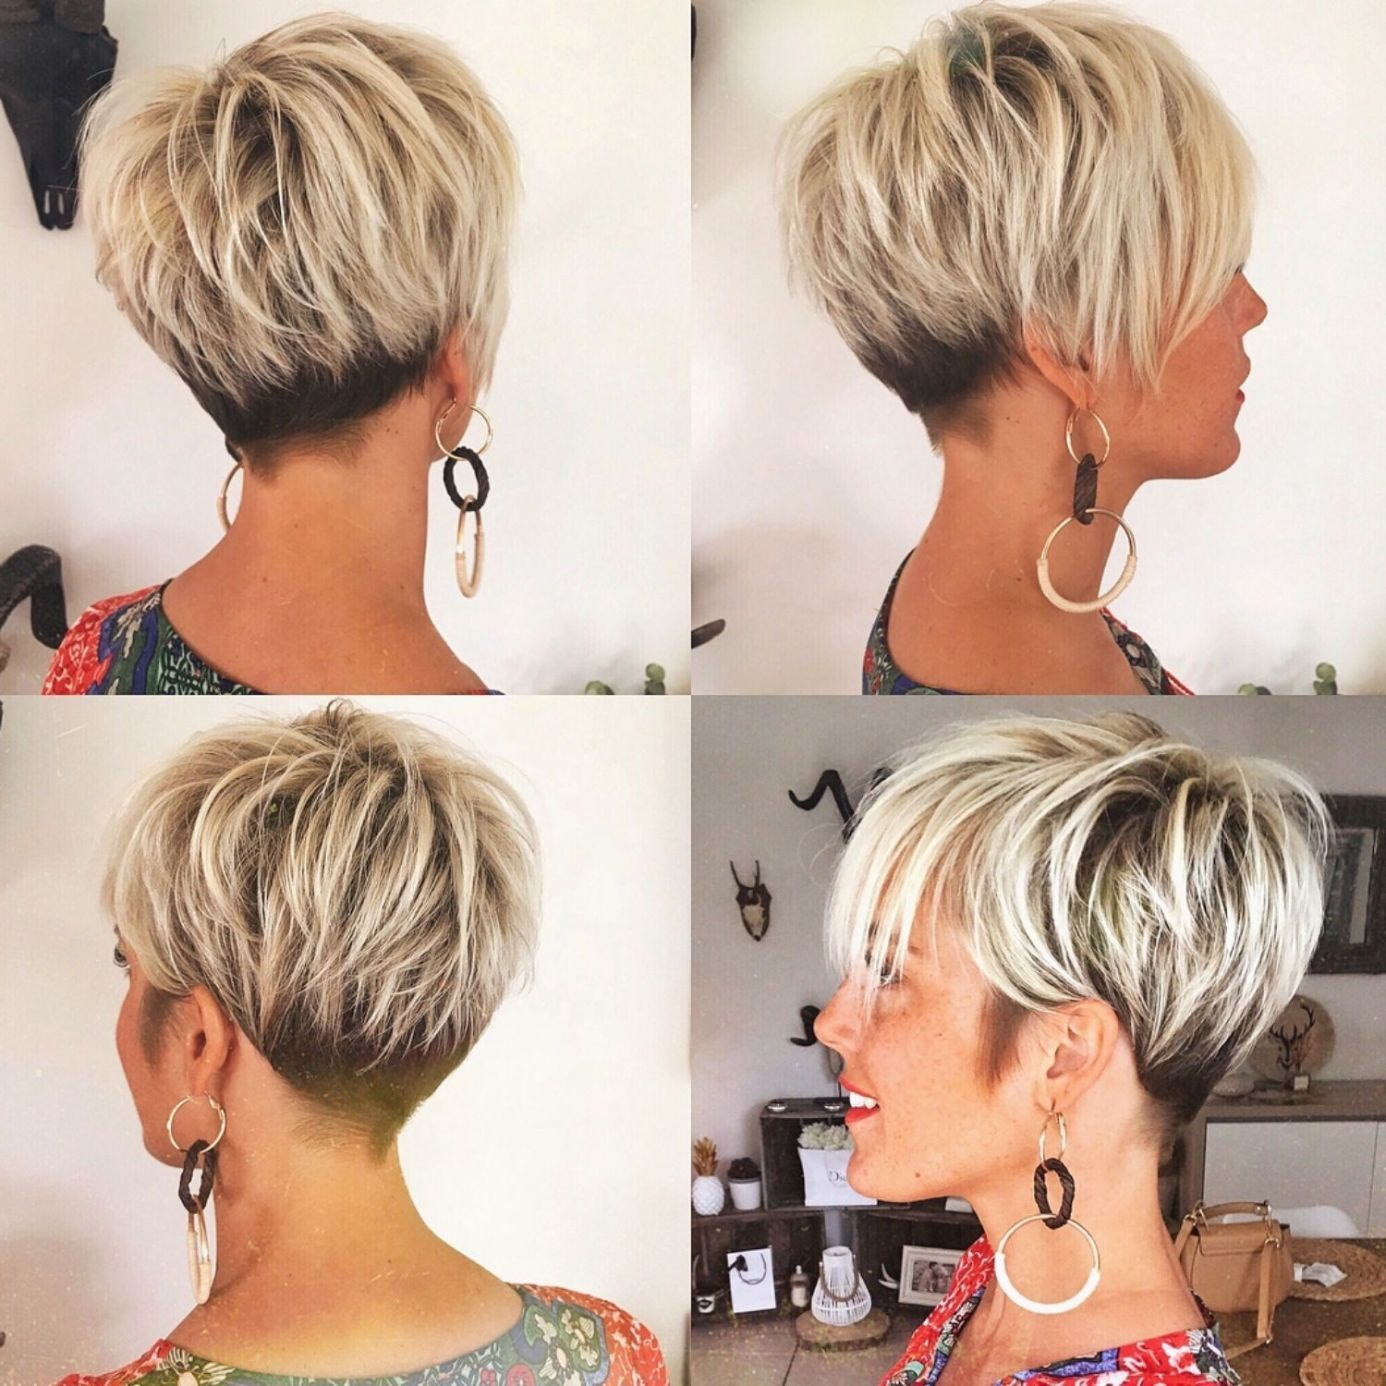 12 Mind-Blowing Short Hairstyles for Fine Hair  Short hair